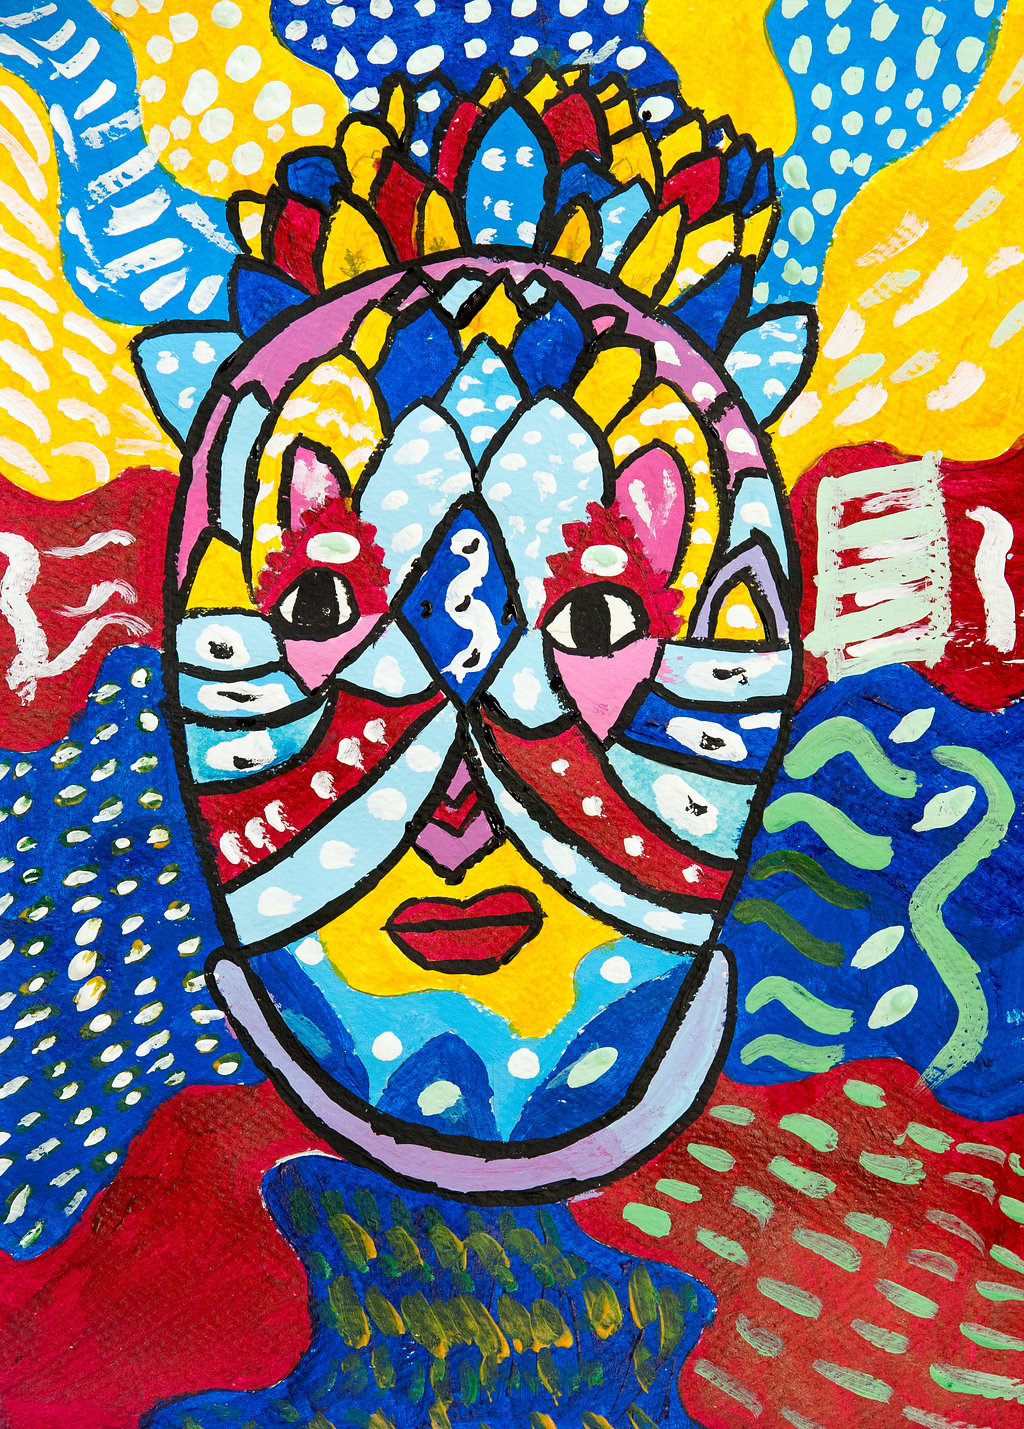 Paintings inspired by African Masks by Y5 at St Peter's CE Primary School Herts